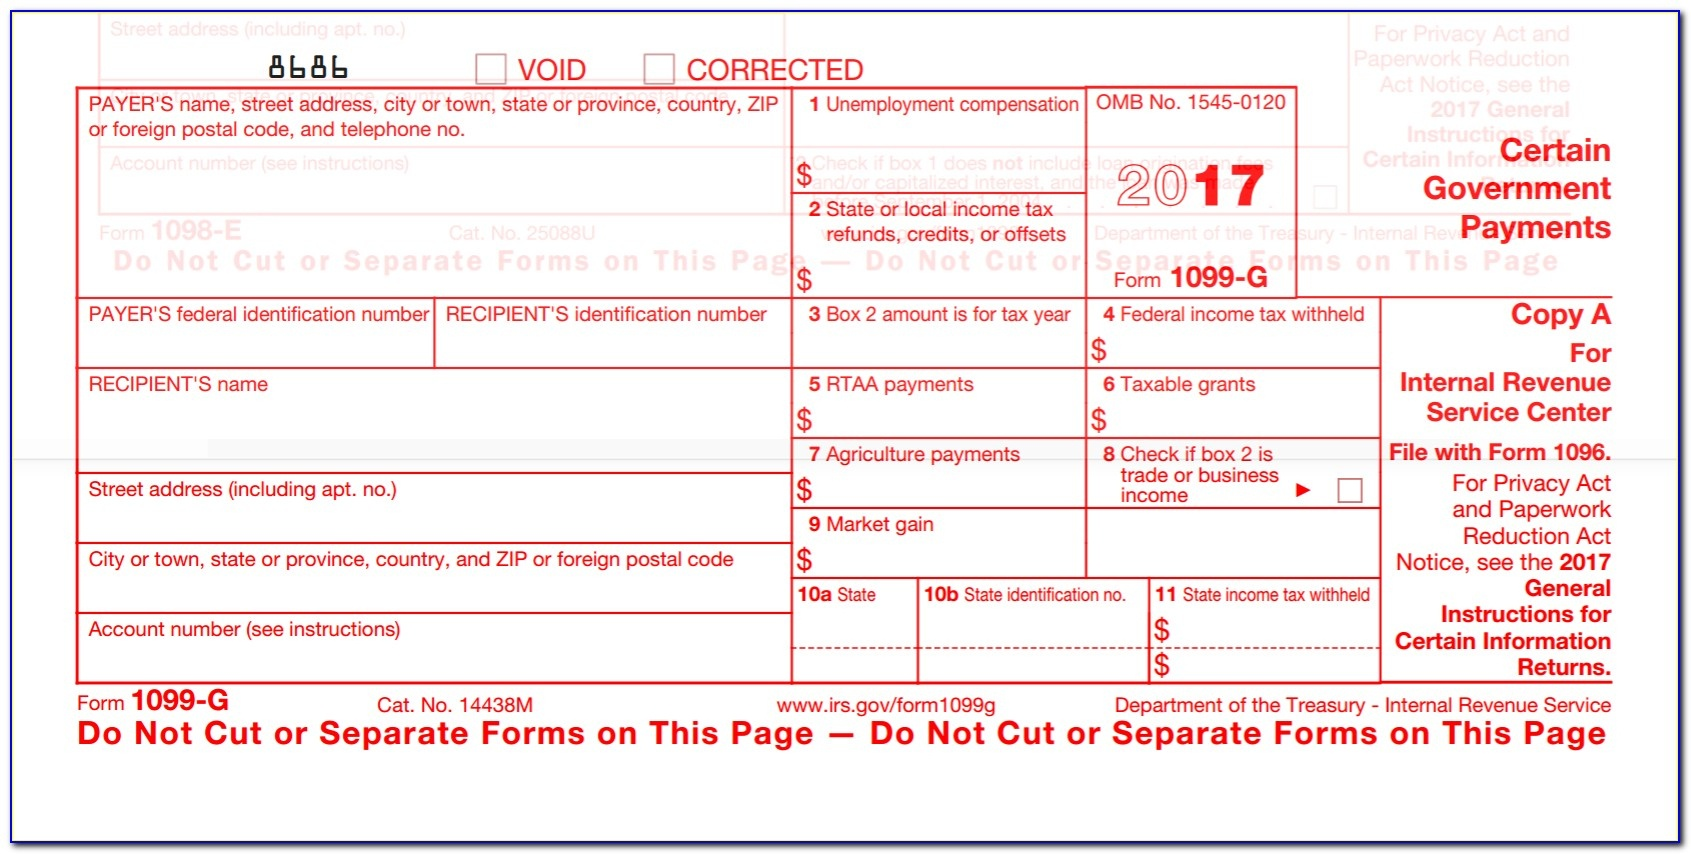 Free Printable 1099 Forms From Irs - Form : Resume Examples #pvmvq3Xpaj - Free Printable Irs Forms